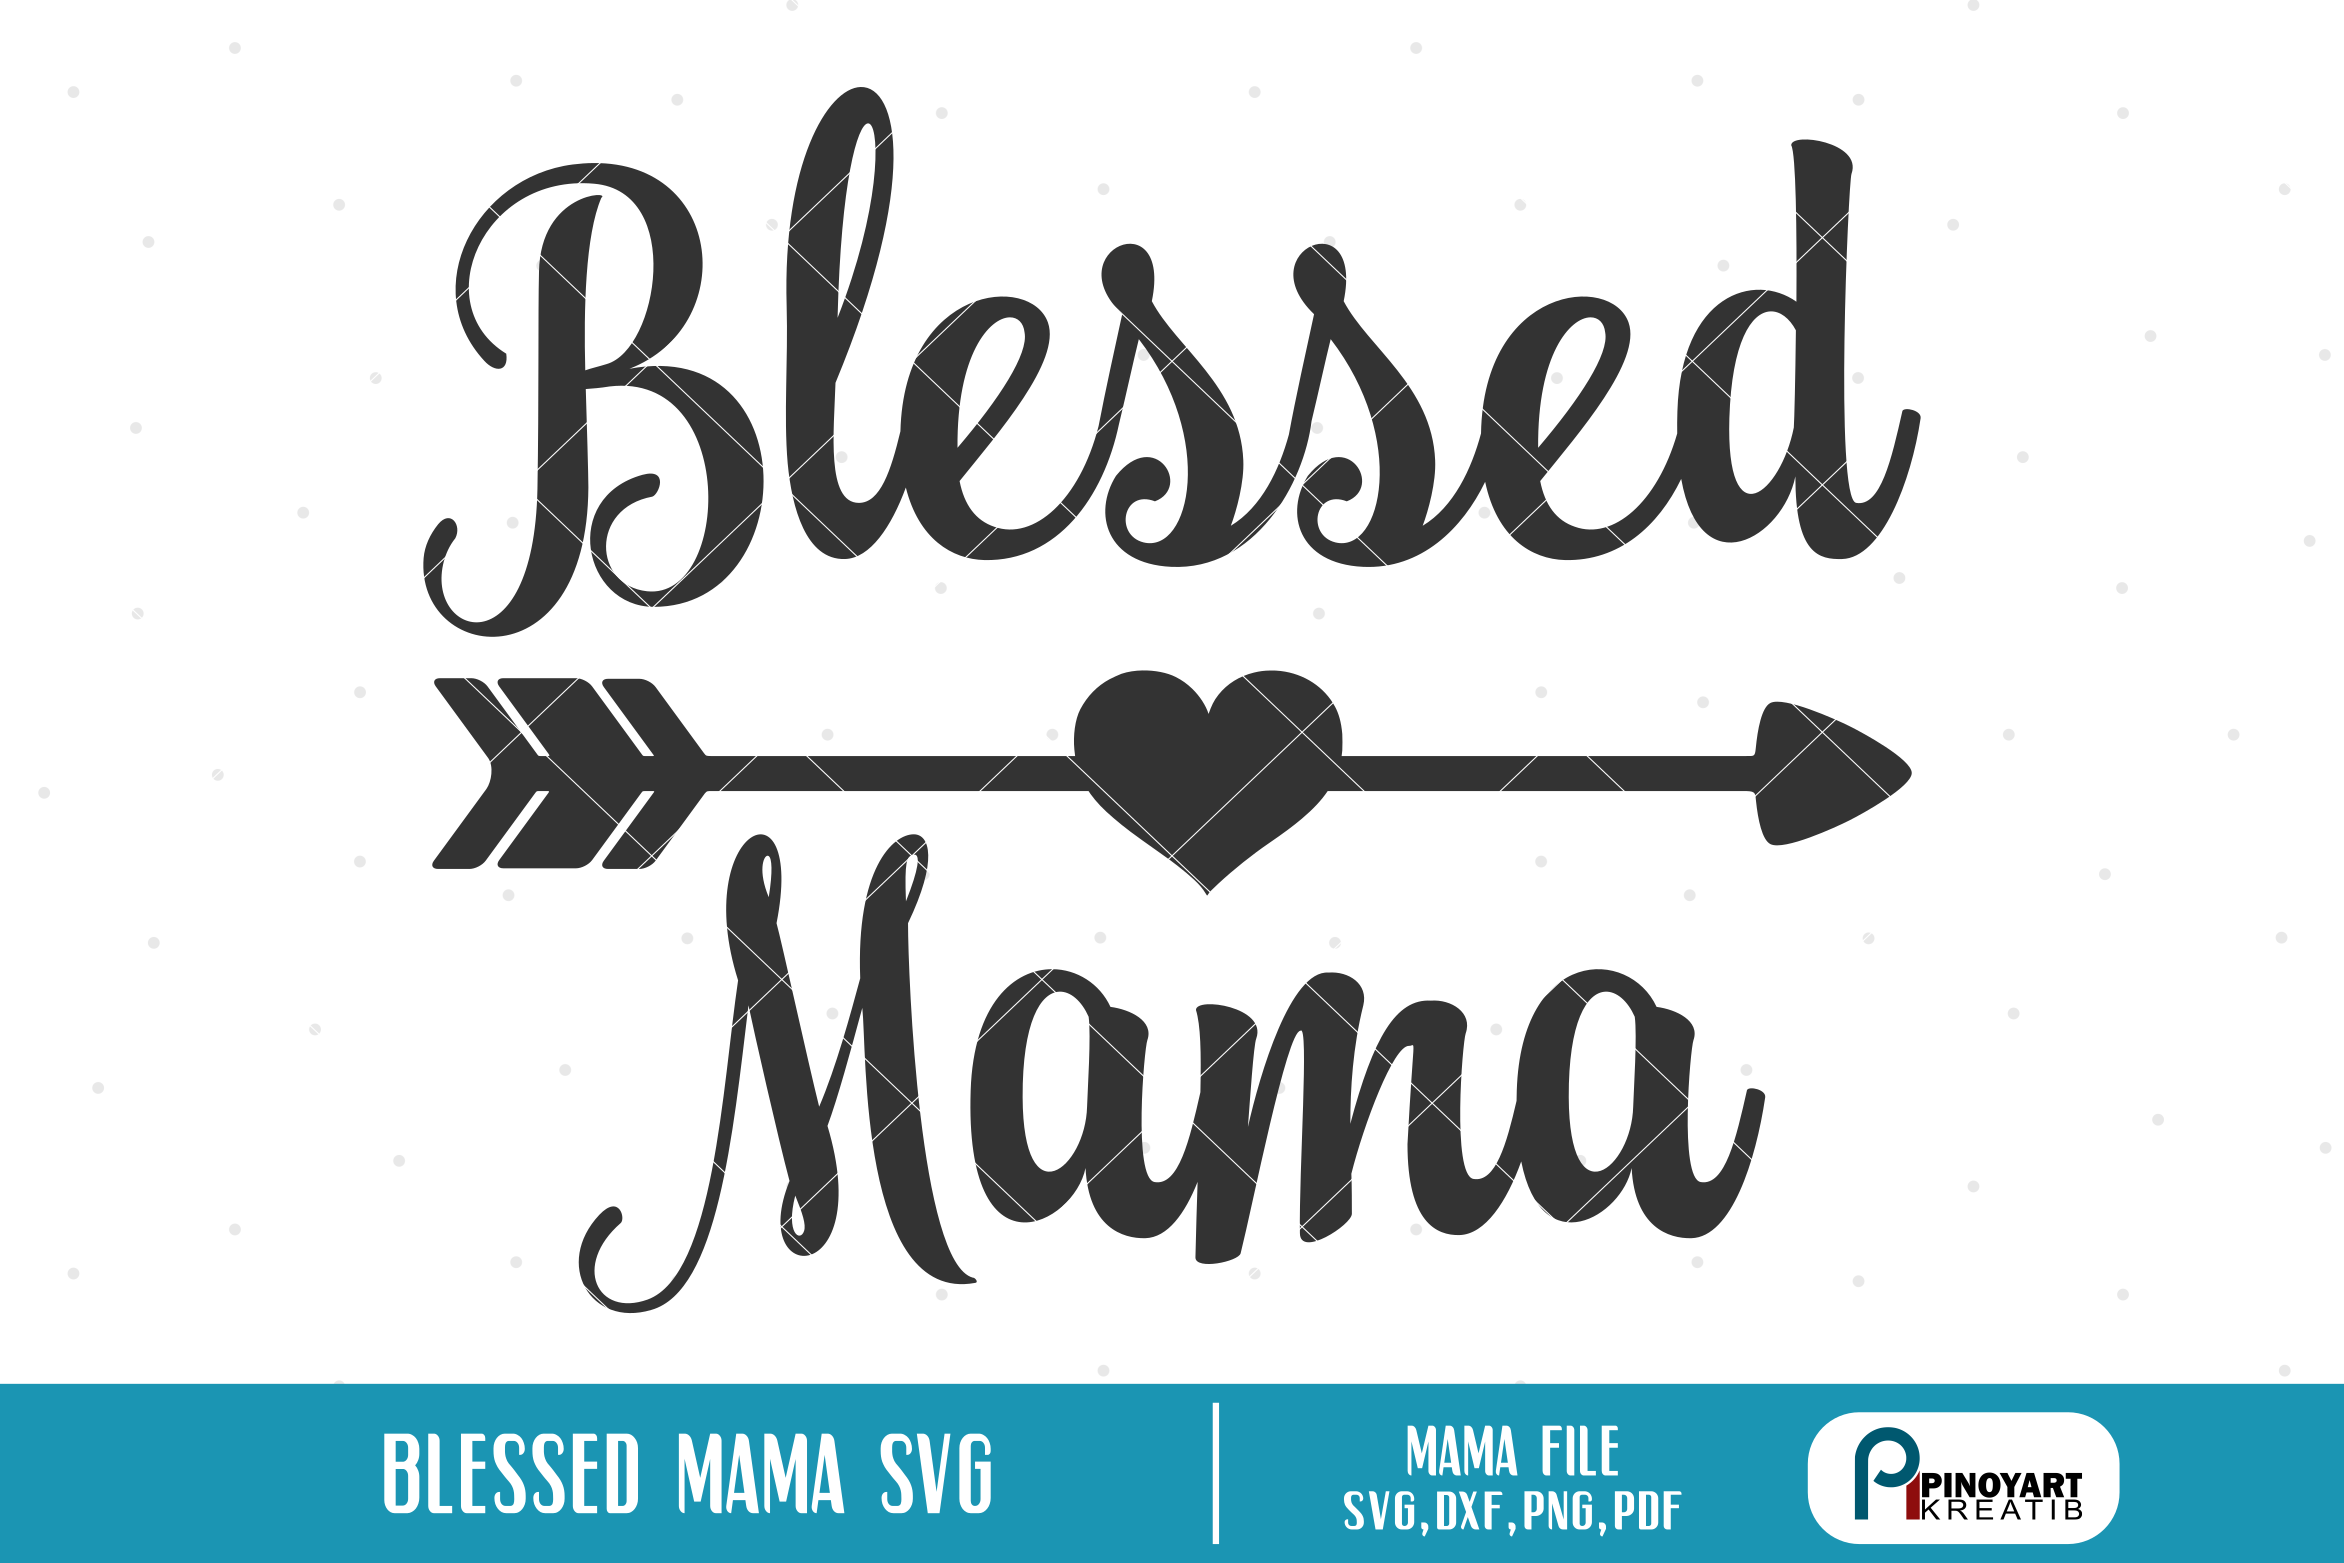 Download Free Blessed Mama Graphic By Pinoyartkreatib Creative Fabrica for Cricut Explore, Silhouette and other cutting machines.